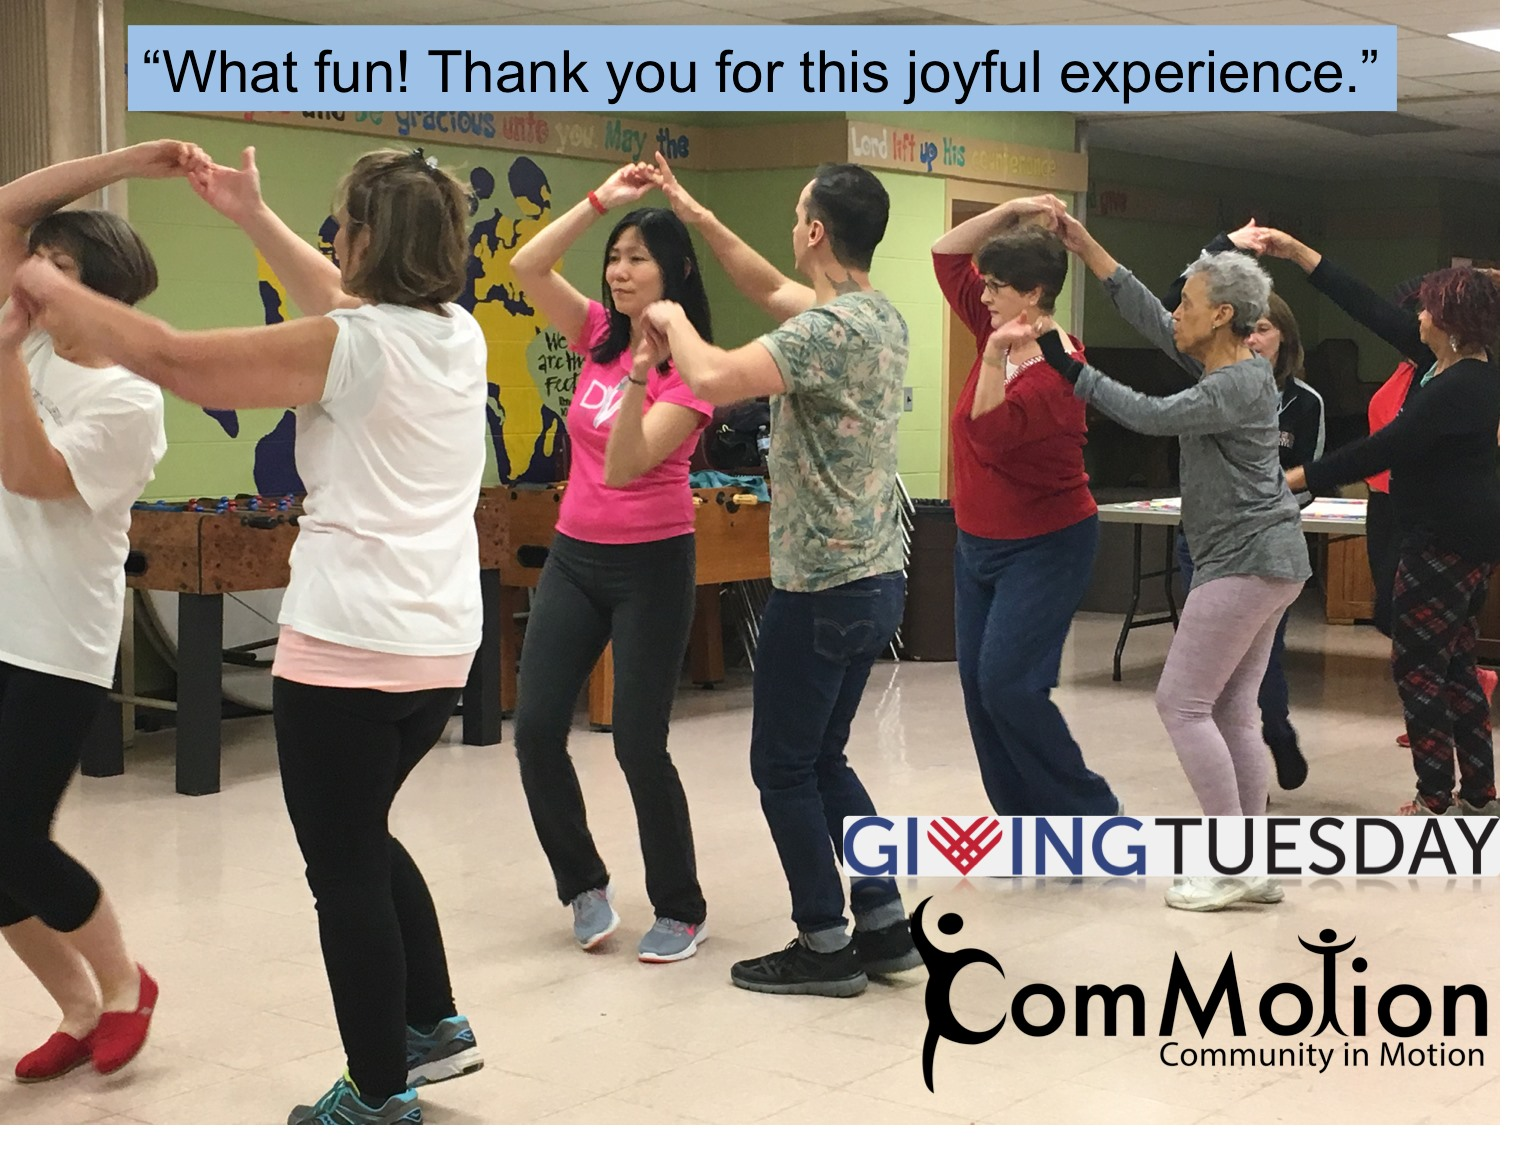 ComMotion - Giving Tuesday